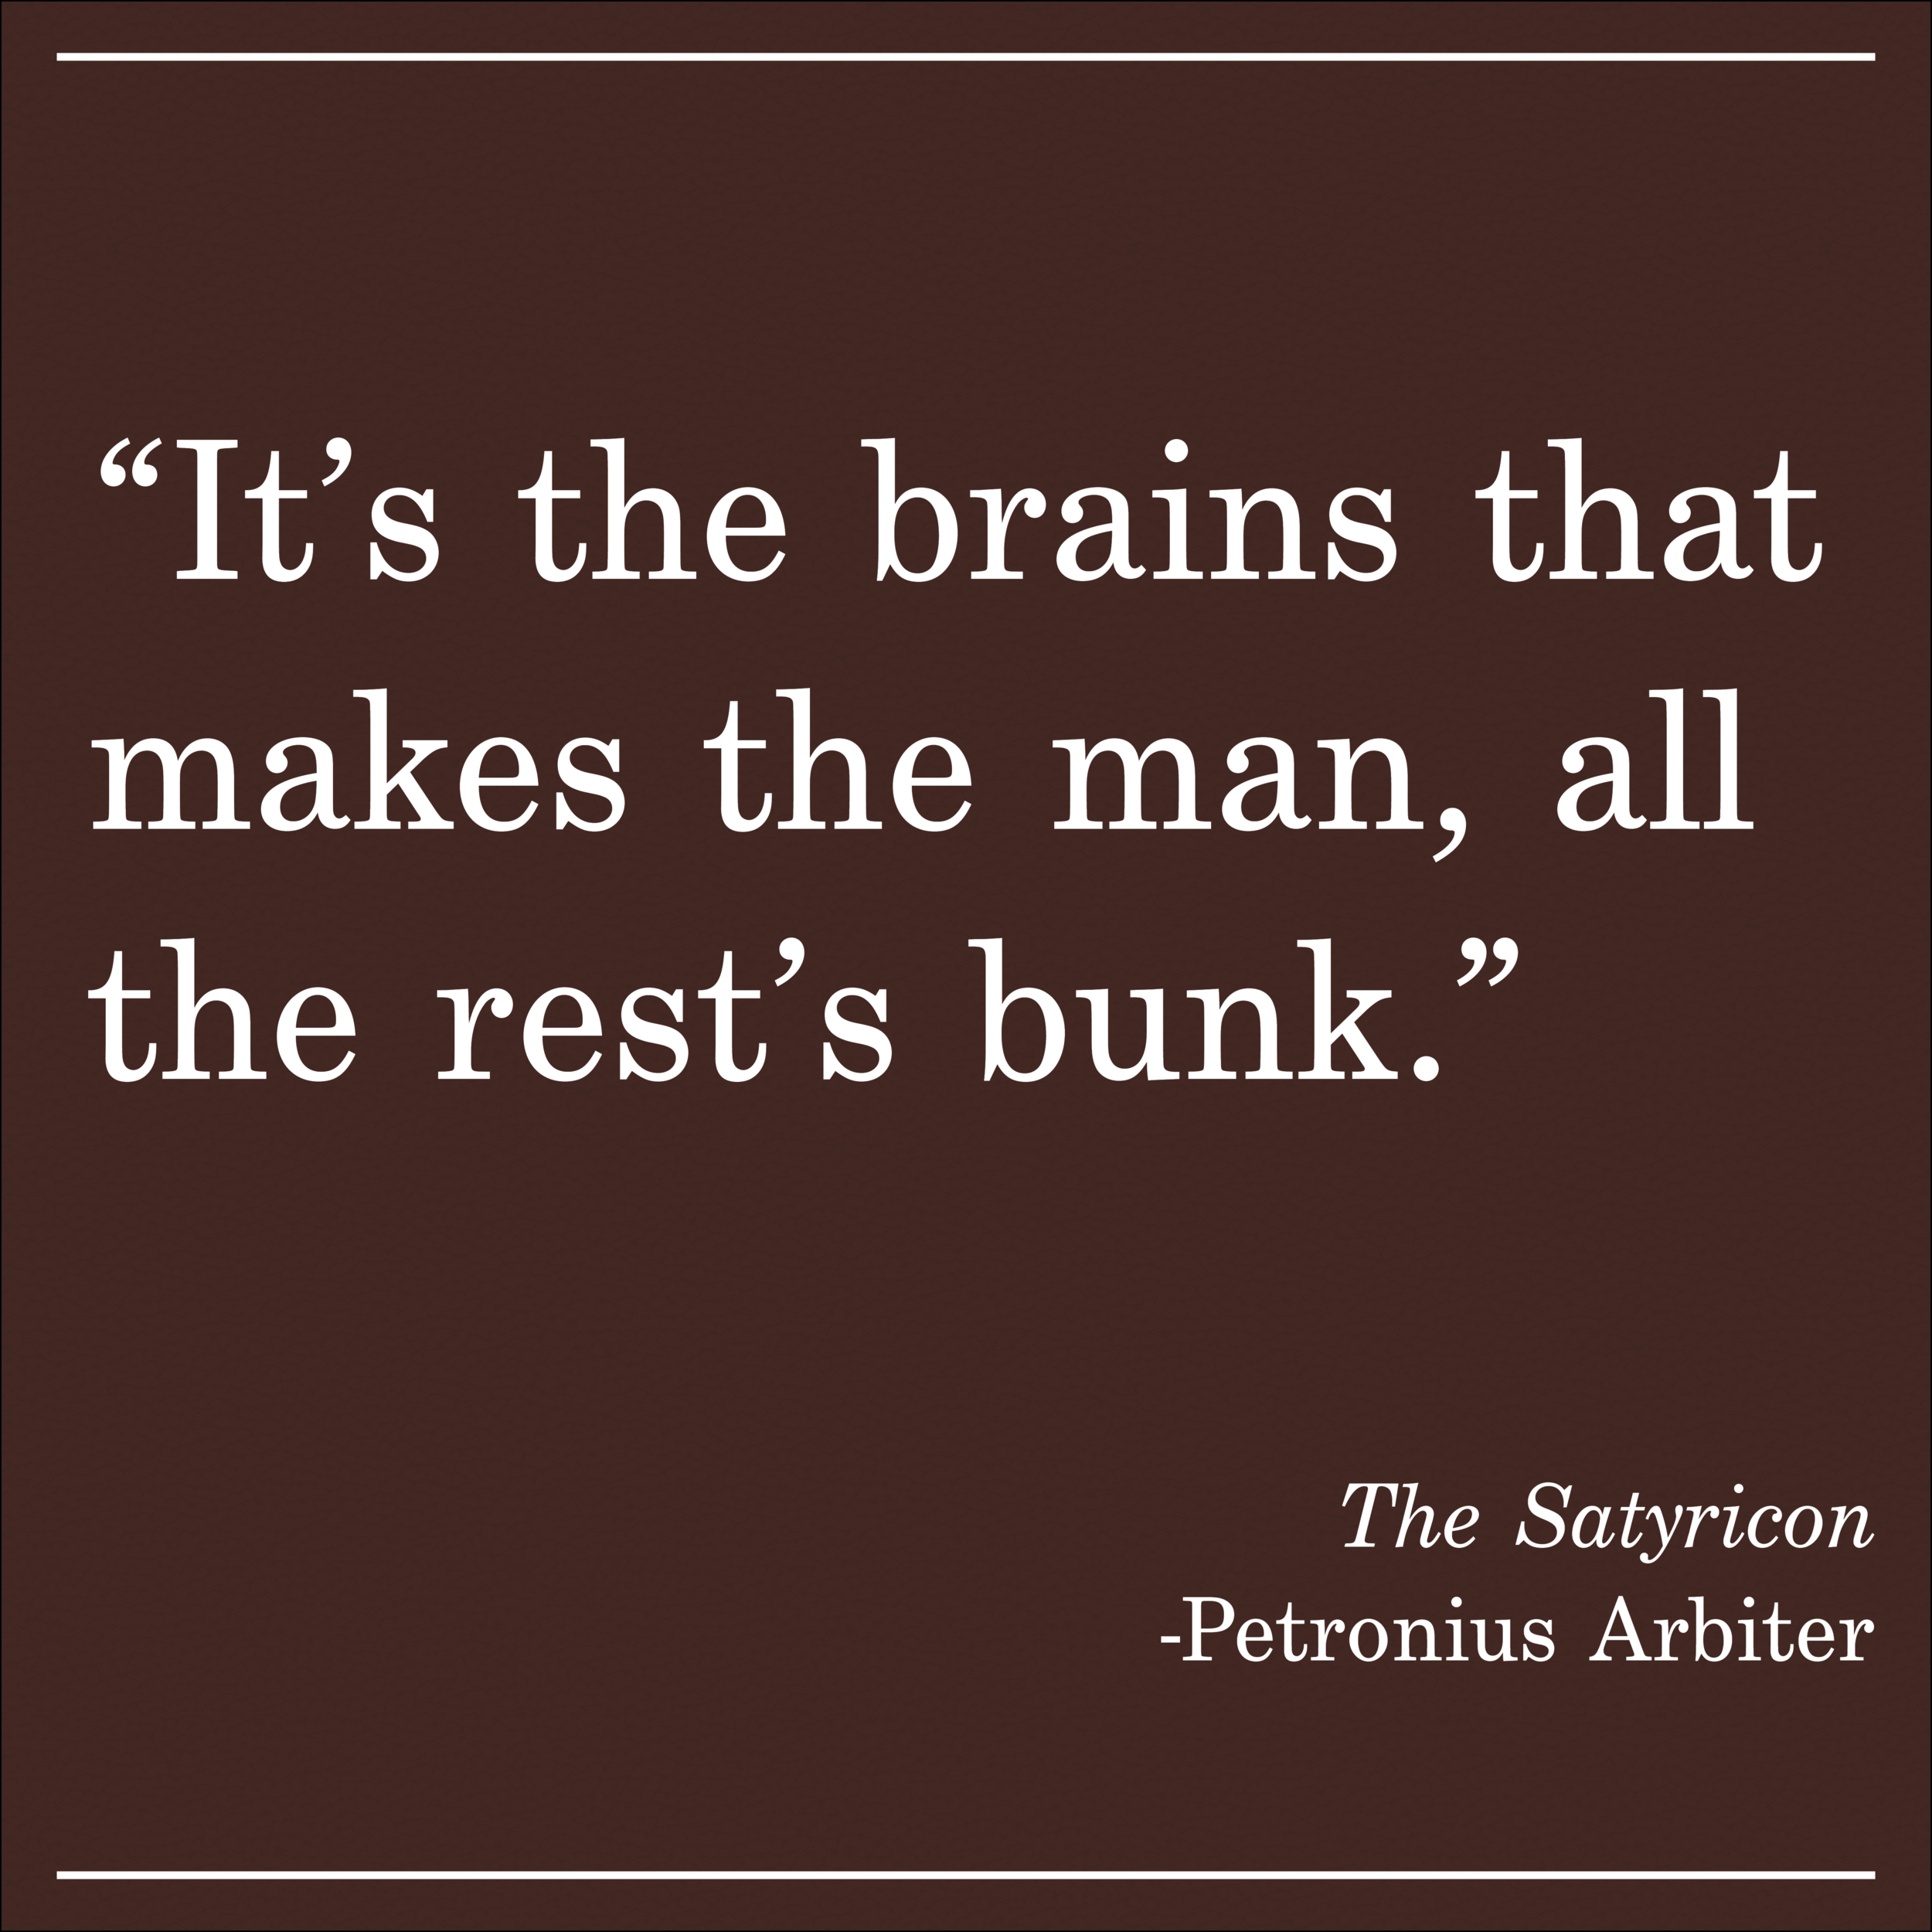 Daily Quote The Satyricon by Patronius Arbiter